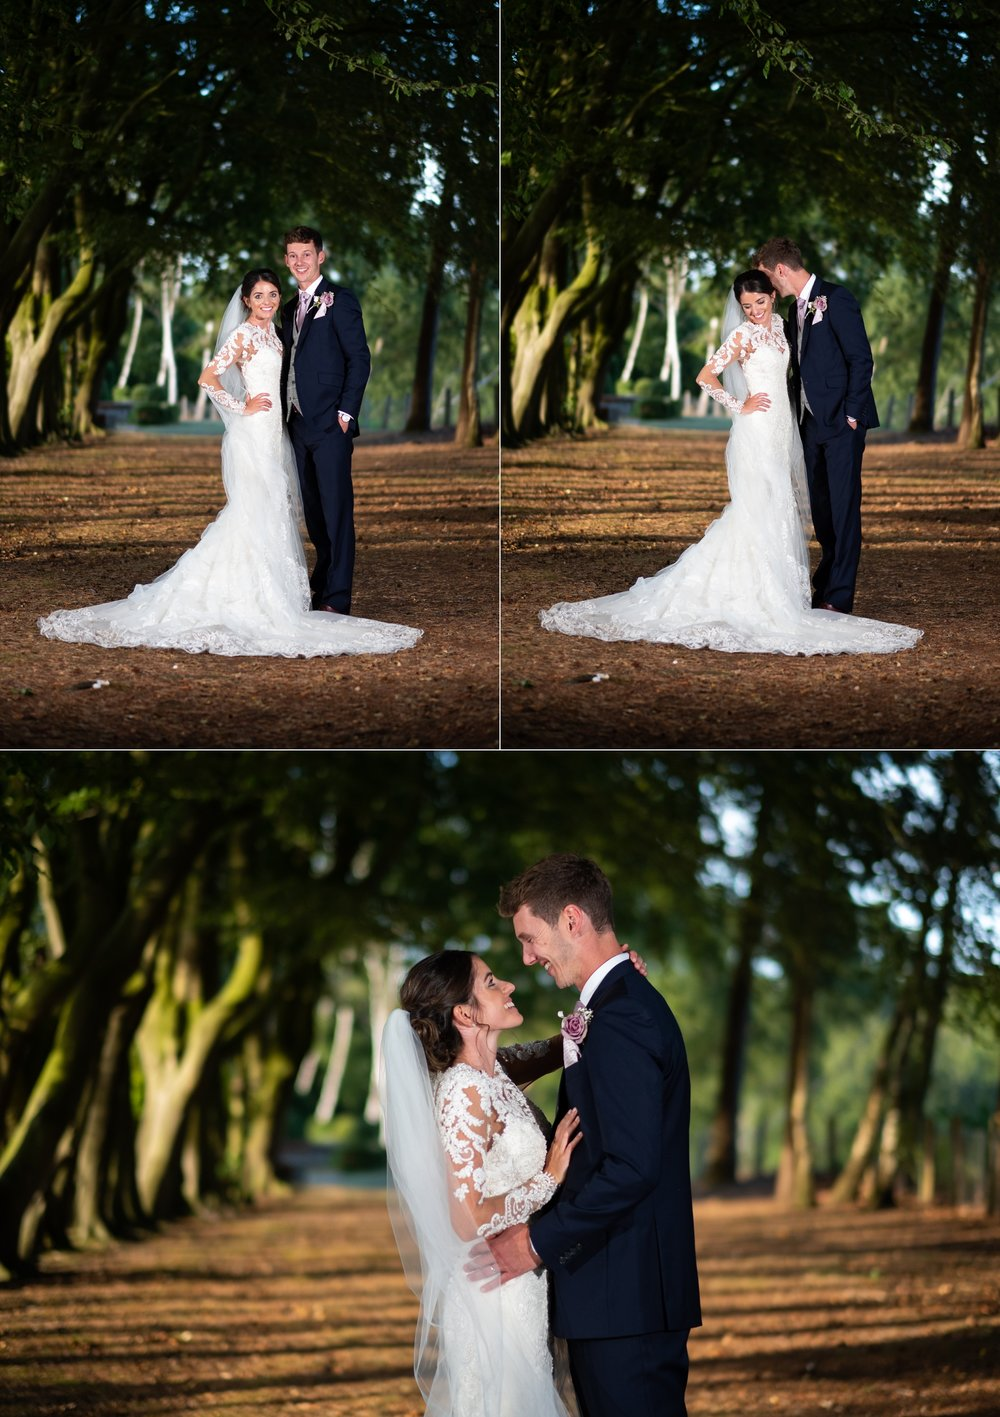 nunsmere hall wedding photo 24.jpg